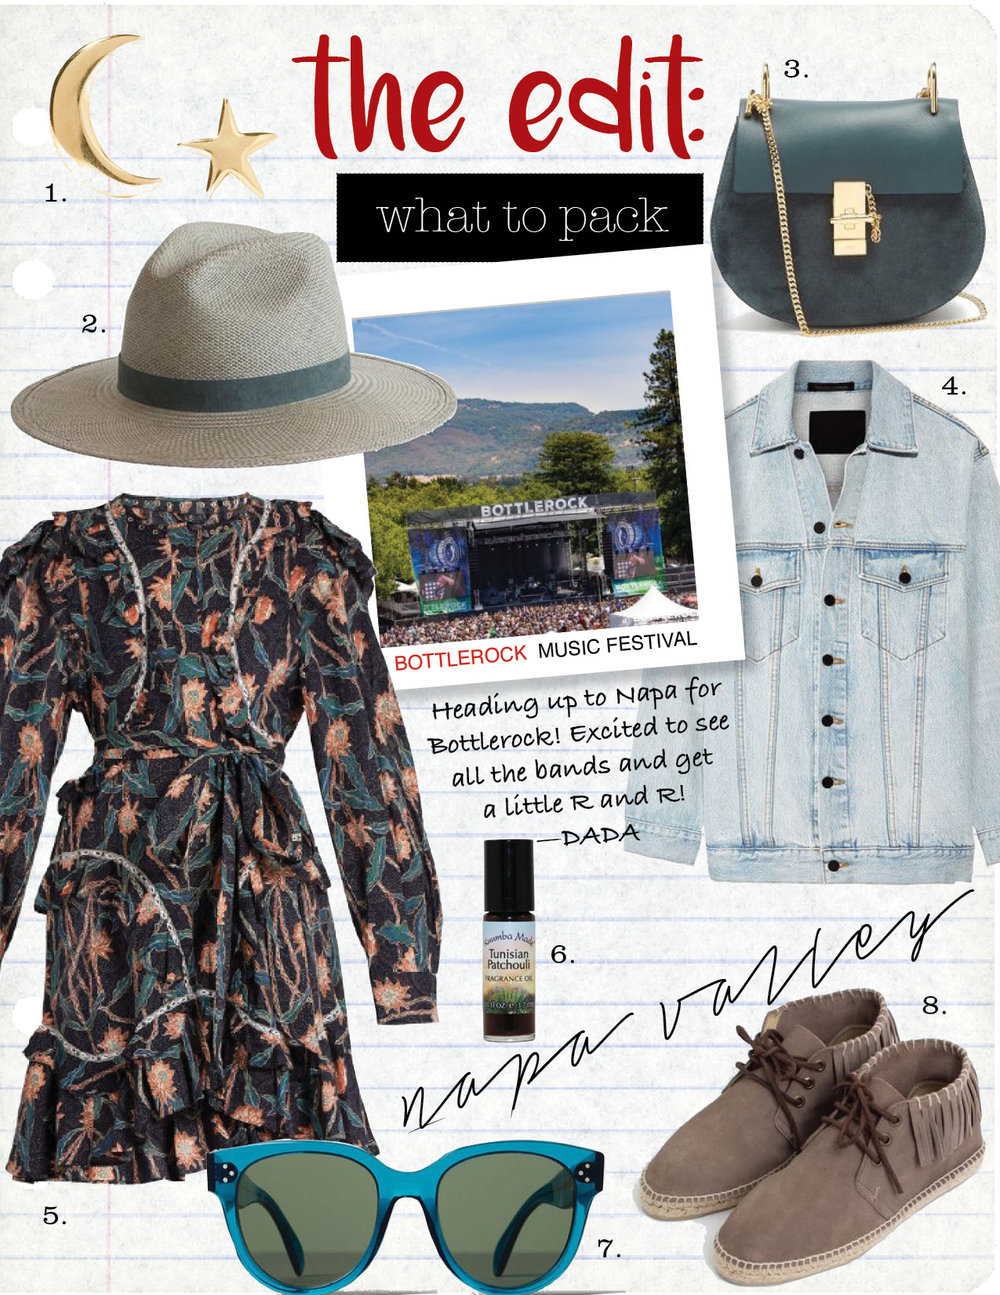 1. catbird tiny dancer 14-karat gold earrings, $115,  net-a-porter.com  2. janessa  leone marion straw hat, $300,  janessaleone.com  3. chloe drew small leather and suede cross-body bag, $1487,  matchesfashion.com  4. alexander wang daze oversized denim jacket, $450,  net-a-porter.com  5. isabel marant ullo floral-print cotton dress, $840,  net-a-porter.com  (and on sale in store) 6. tunisian patchouli oil, $10,  kuumbamade.com  (and avail at whole foods) 7. celine audrey sunglasses, $300,  celine.com  8. cherokee high top espadrille, $170,  shopheist.com    9. Bottlerock